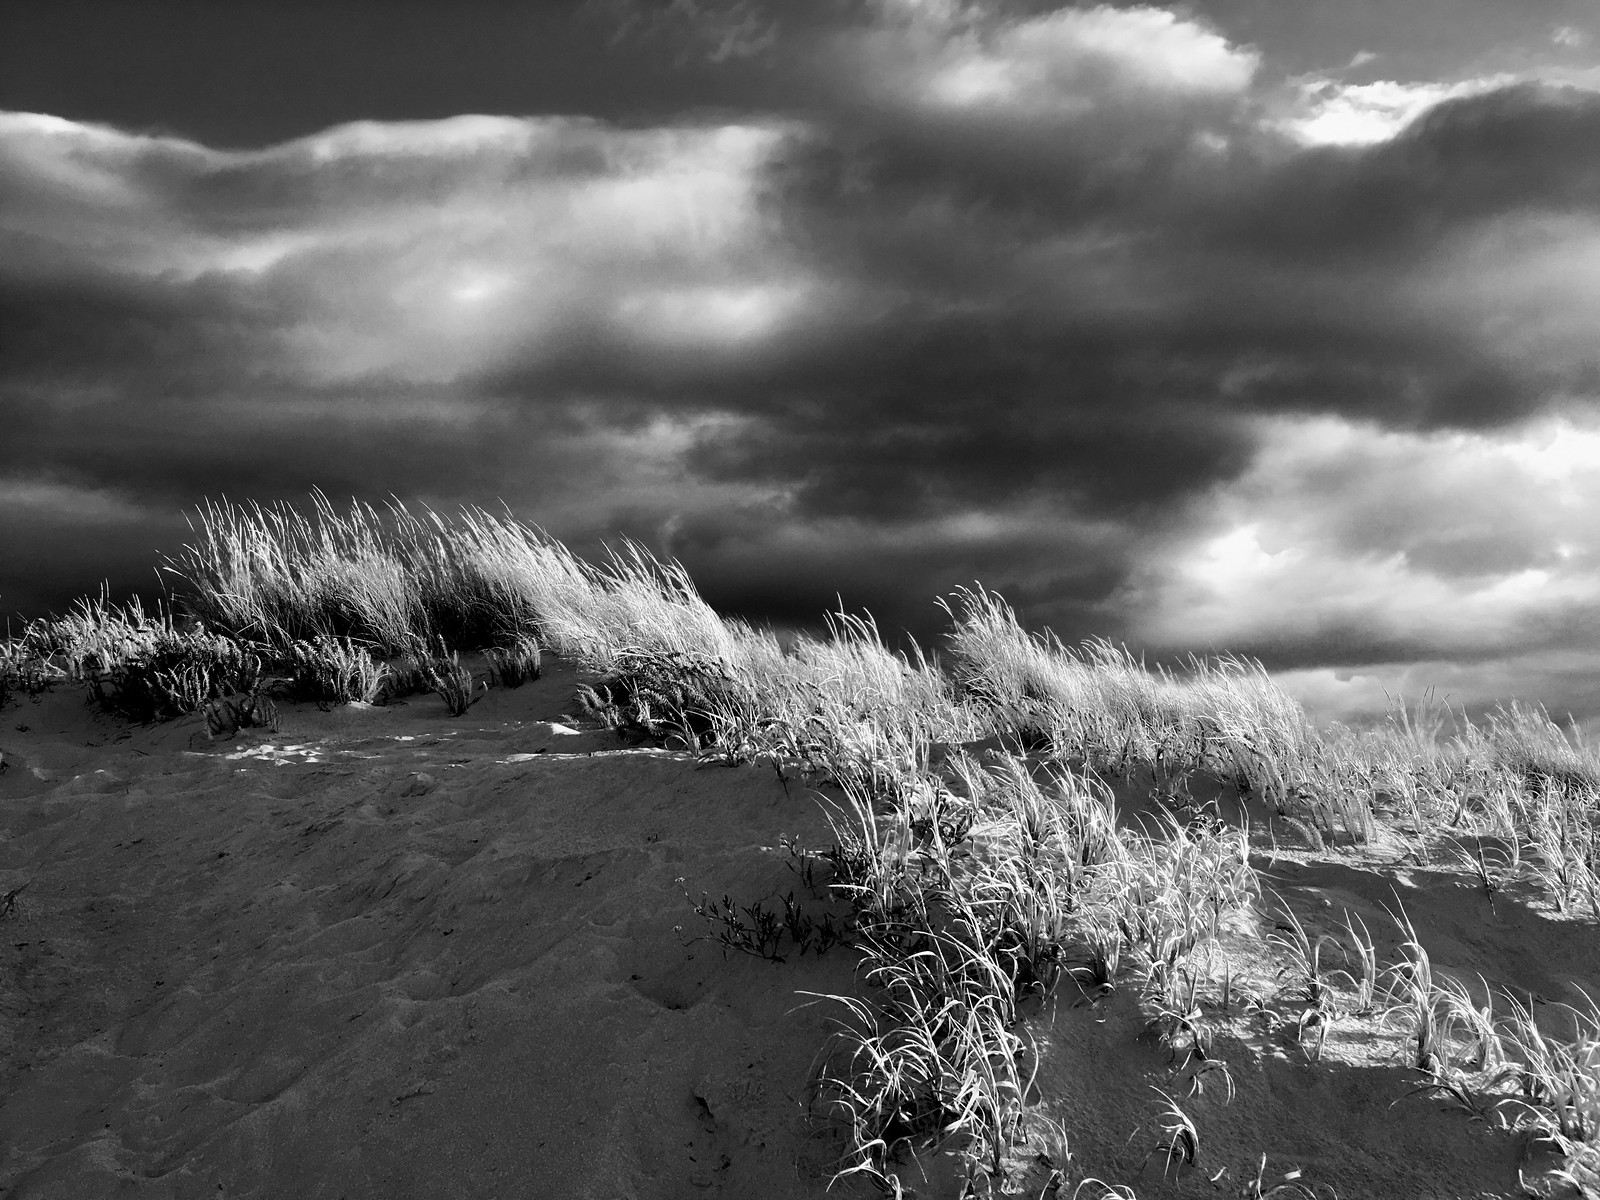 dunes/ grass/ clouds b&w | by sylvie joy